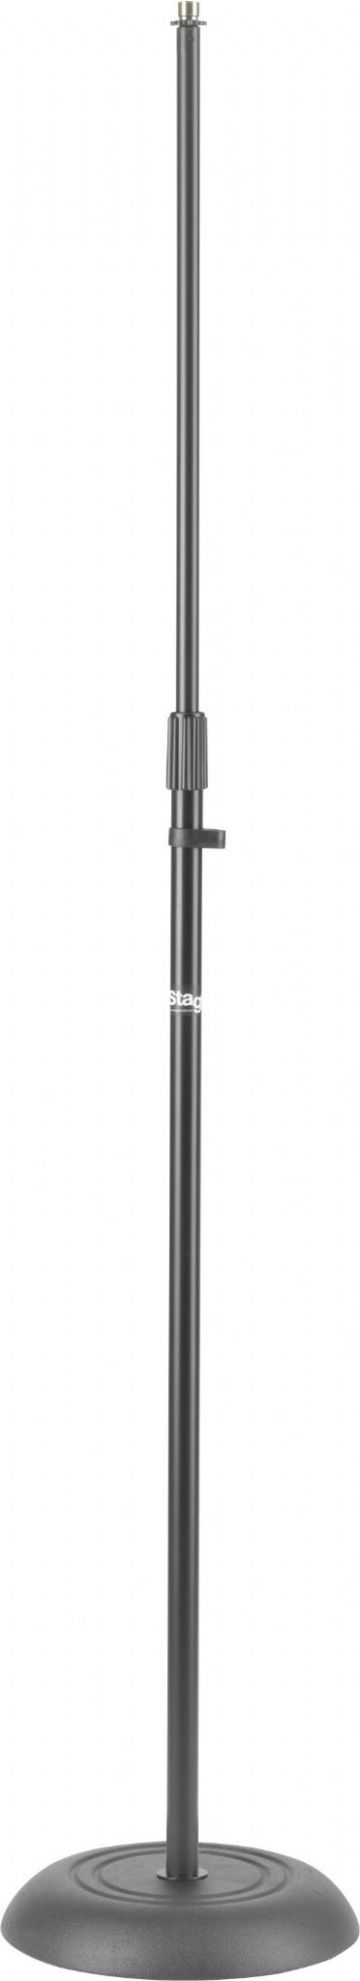 Microphone floor stand w/heavy solid round black base MIS-1120BK